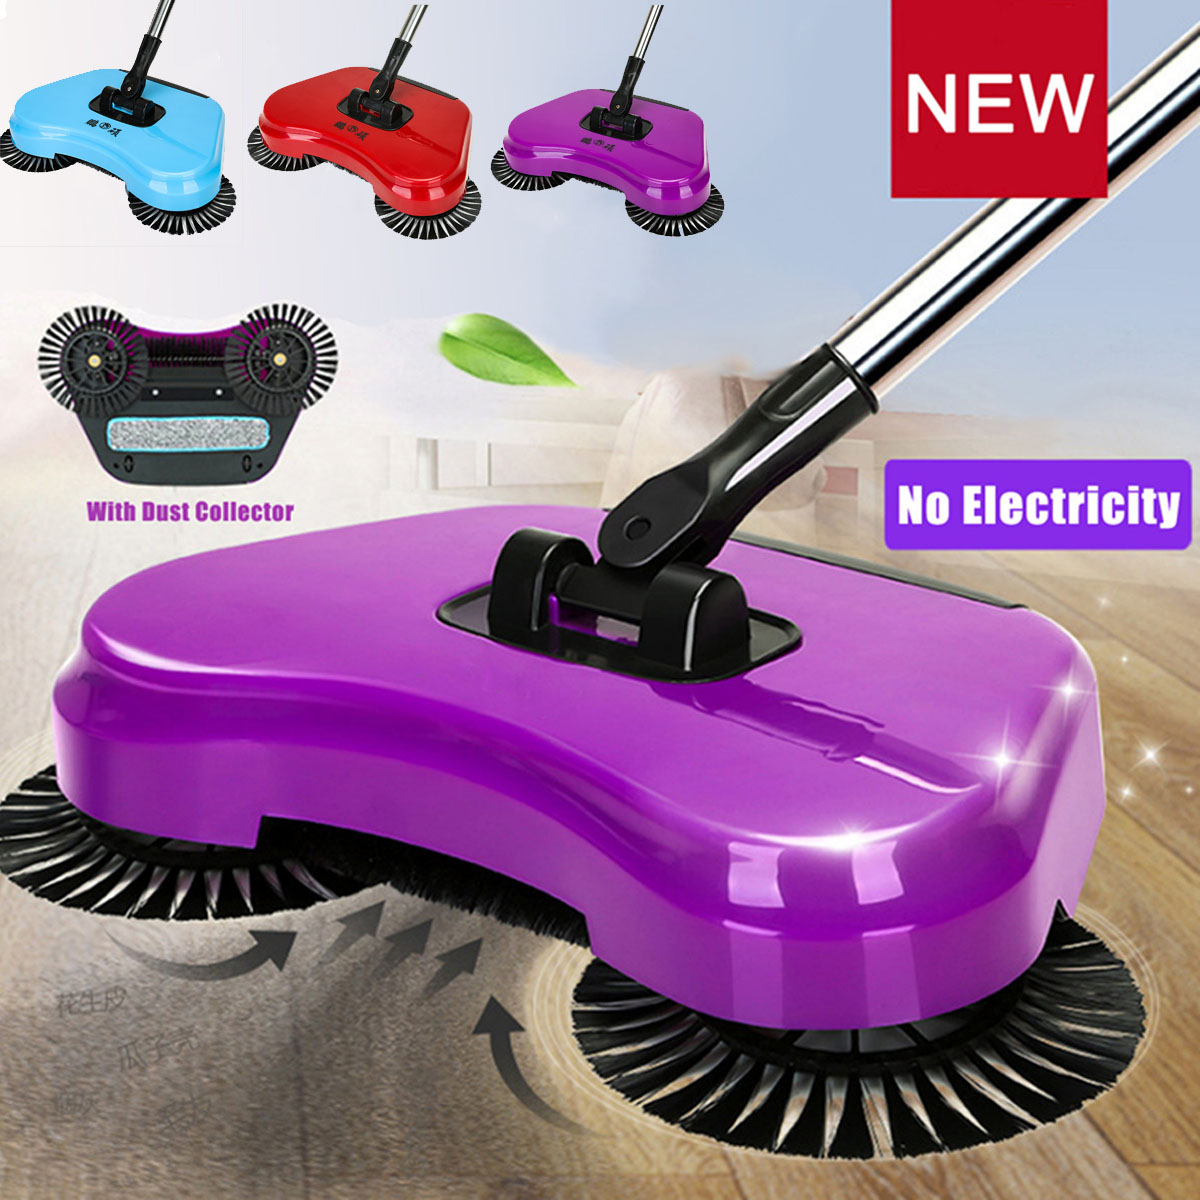 Hurricane Spin Hand Push Broom Sweeper Household Home Floor Dust Cleaning Mop Without Electricty